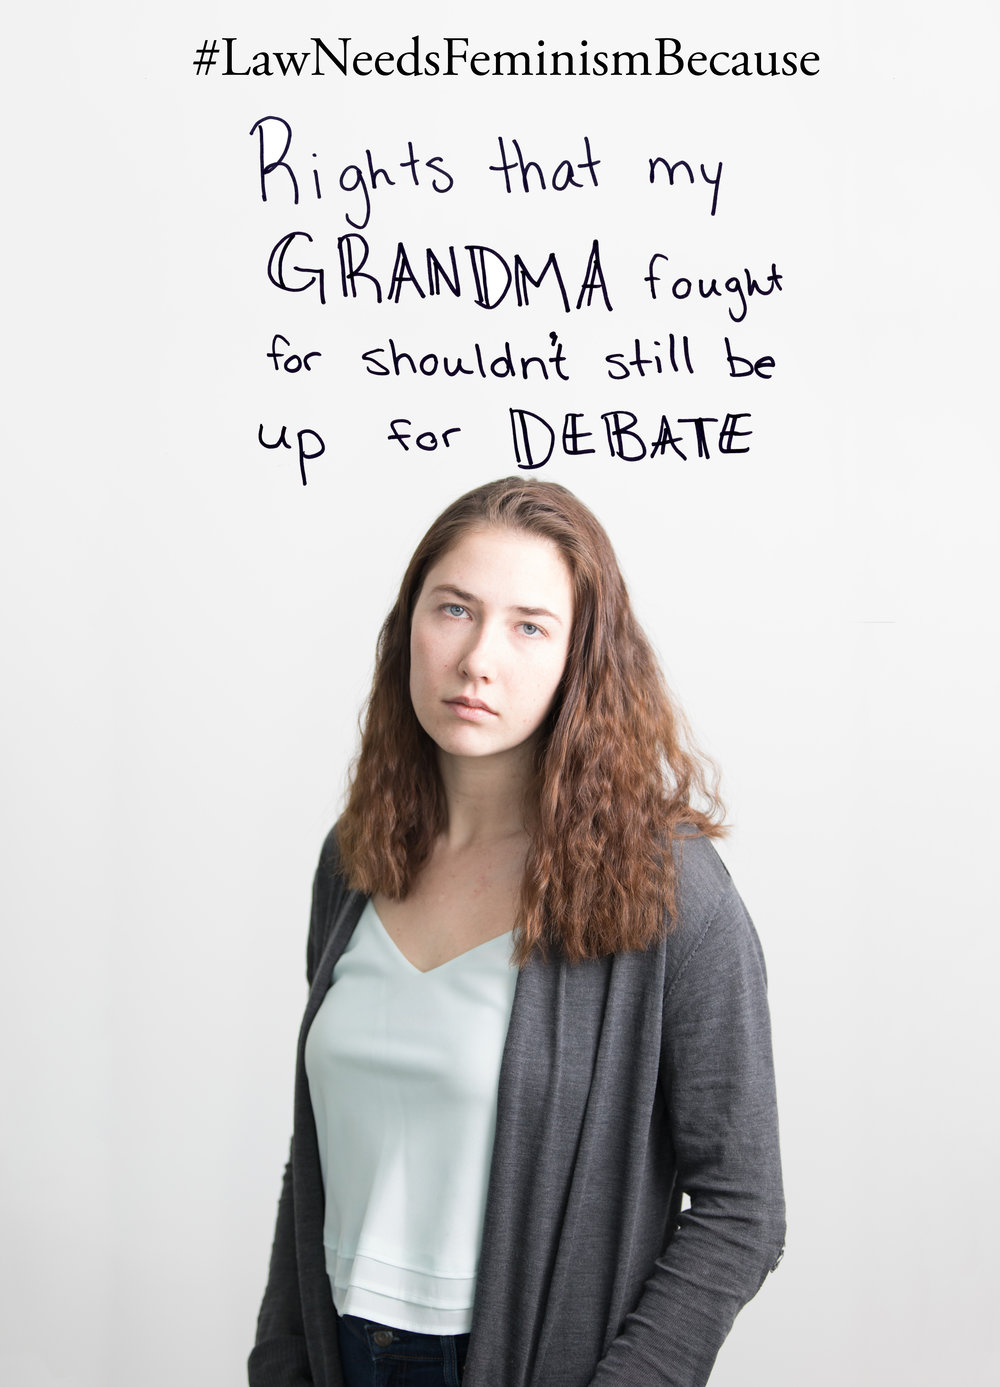 """Law Needs Feminism Because  """"Rights that my GRANDMA fought for shouldn't still be up for DEBATE"""""""